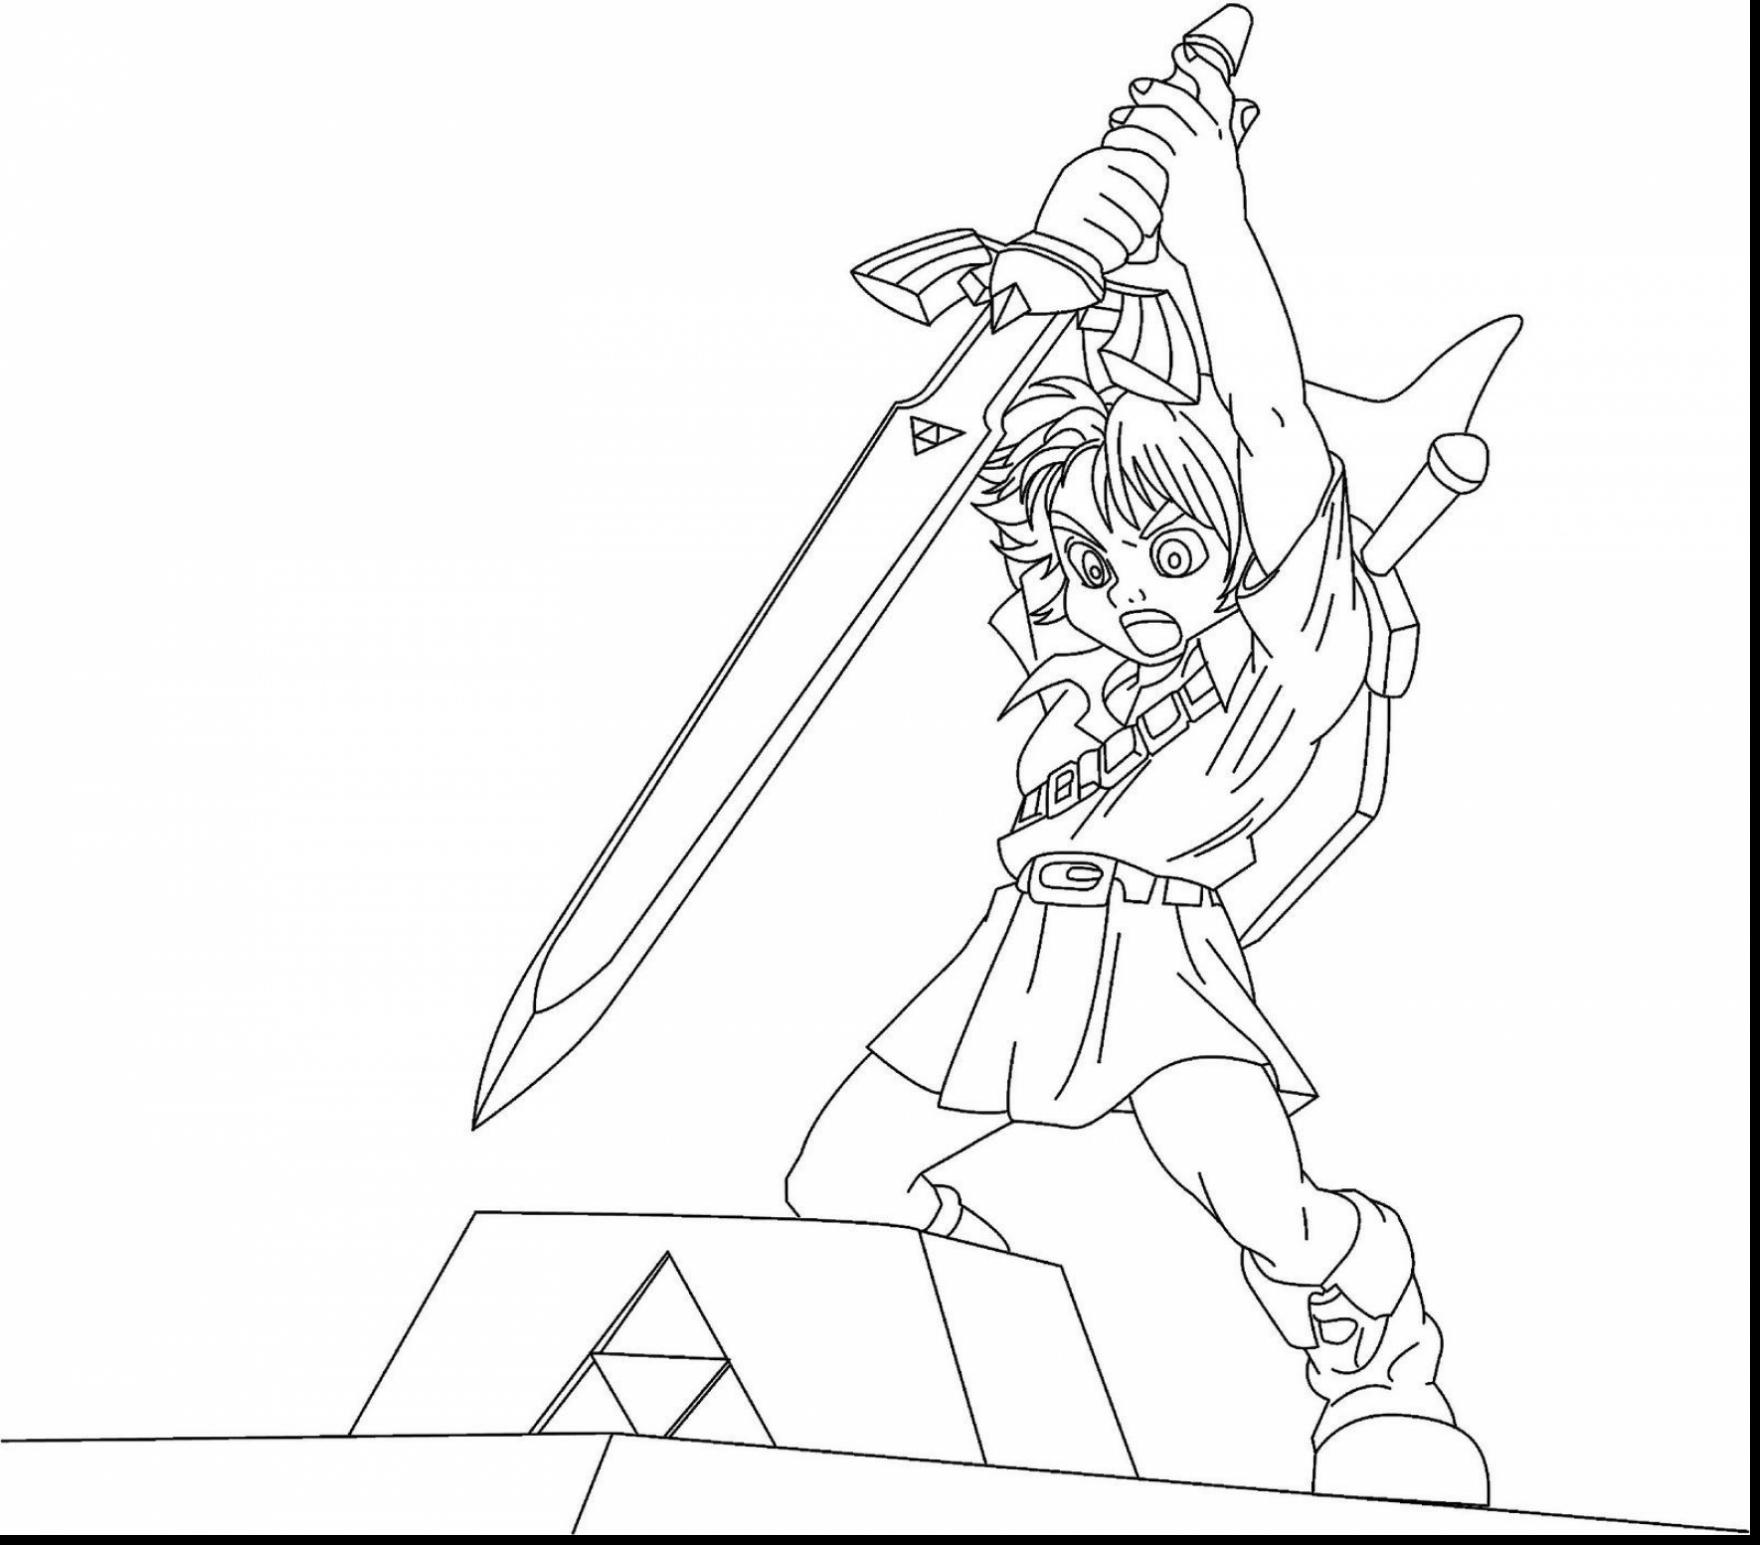 Link Coloring Pages At Getdrawings Free Download